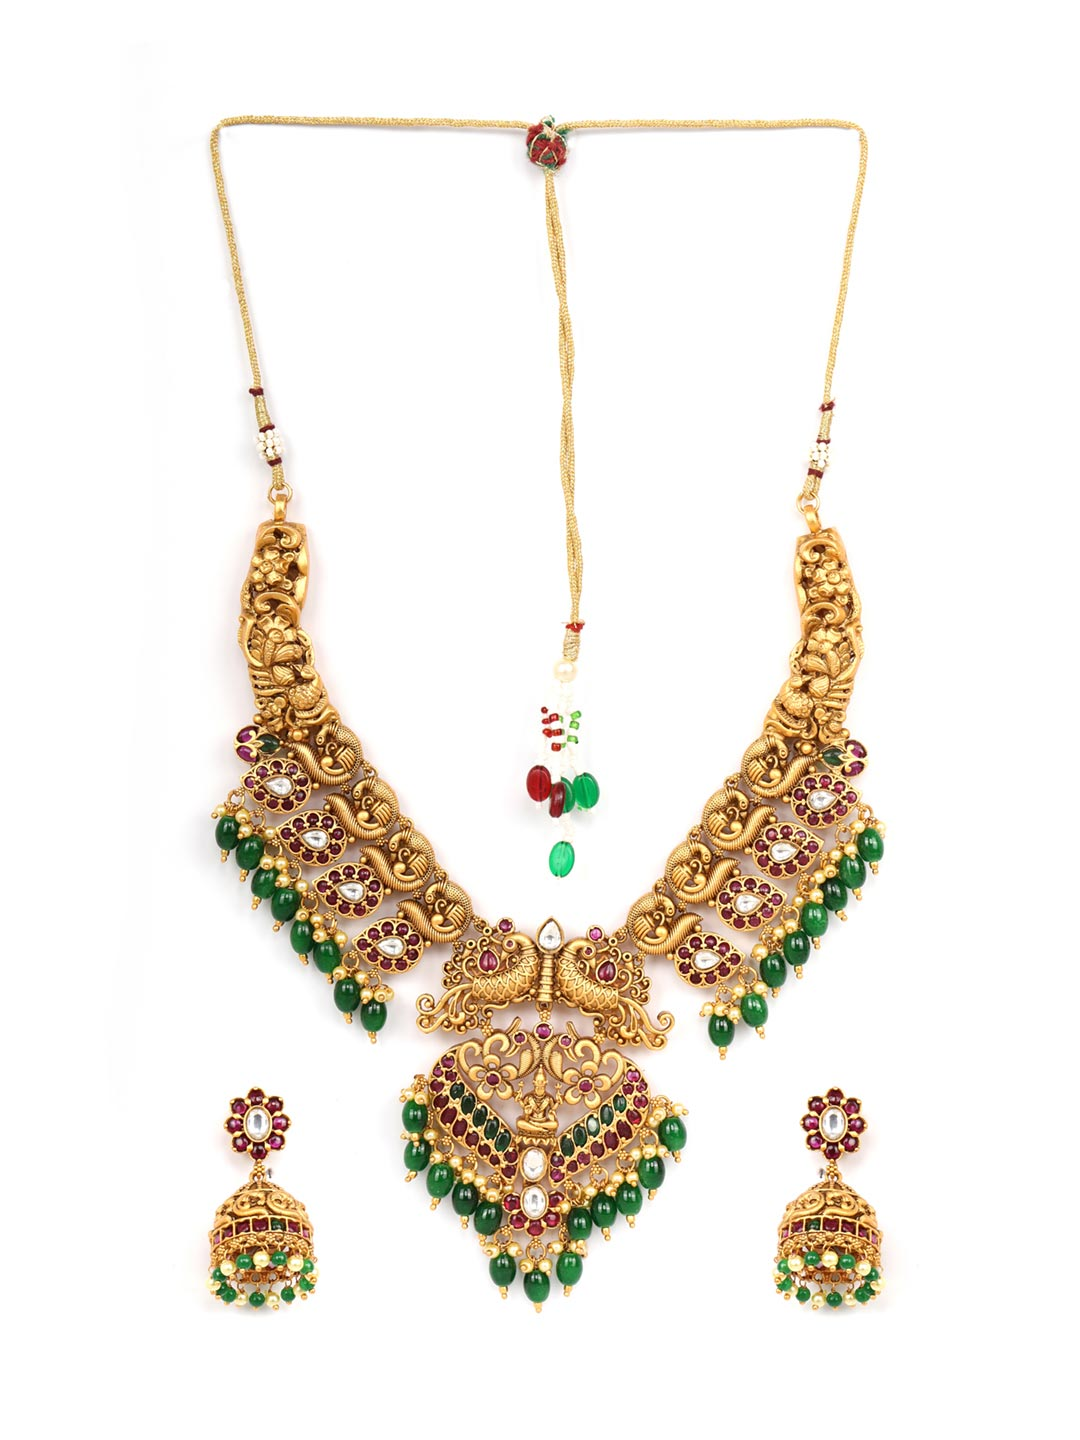 Emerald Ruby Pearls Beads Stones Gold Plated Peacock Choker Set